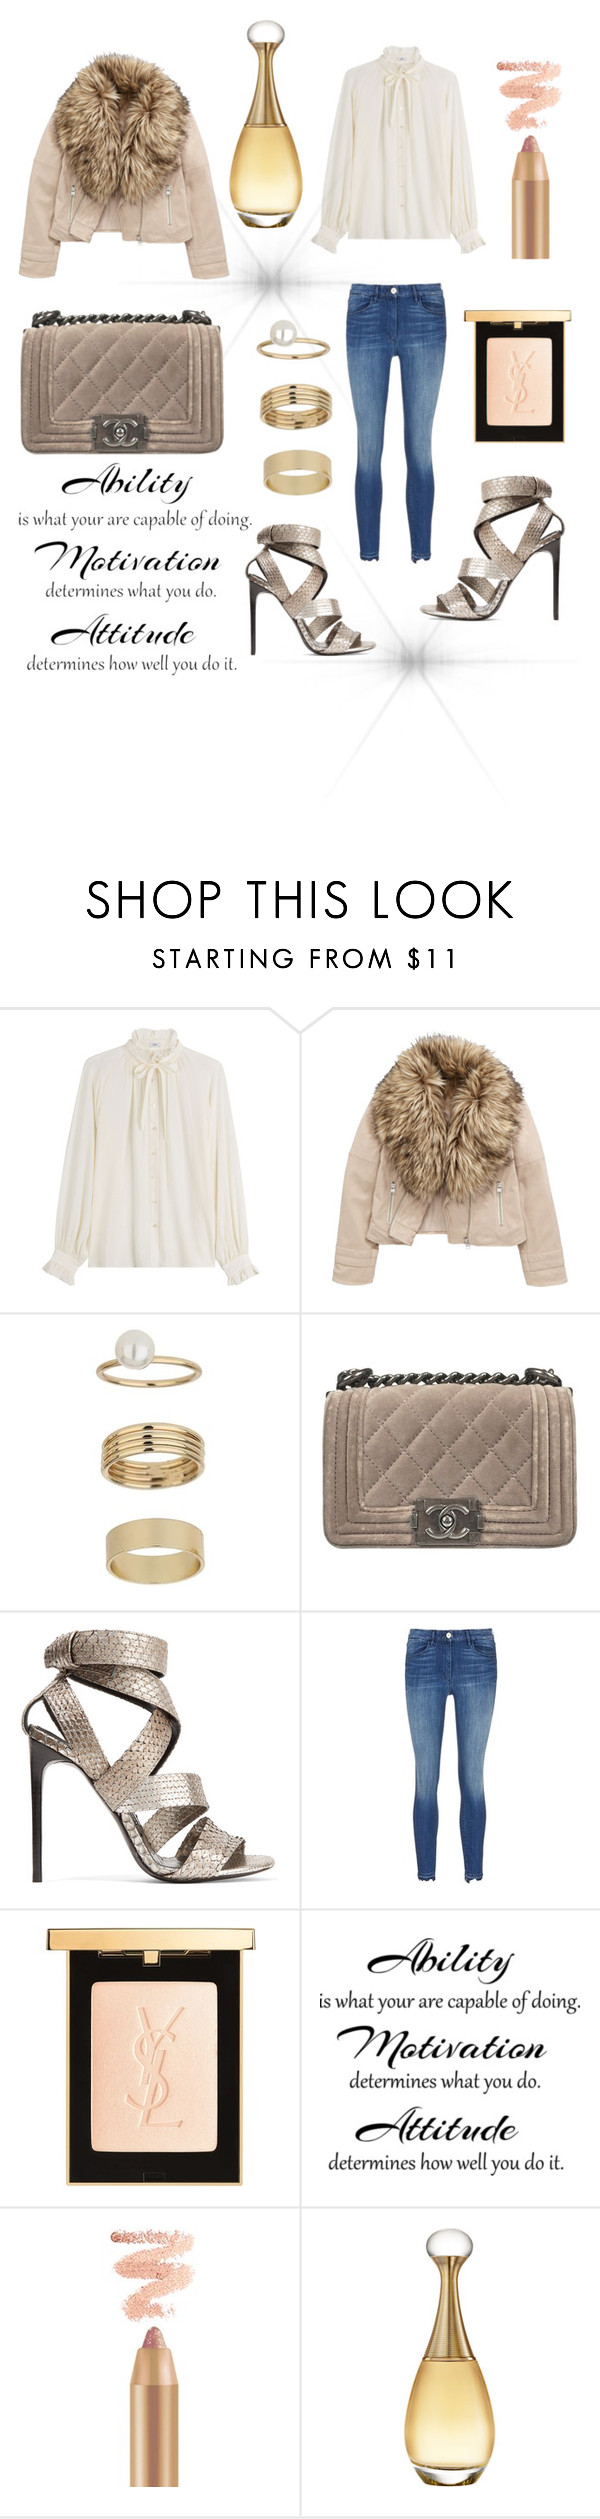 """Sans titre #440"" by giirly1994 ❤ liked on Polyvore featuring Closed, Miss Selfridge, Chanel, Tom Ford, Yves Saint Laurent and Christian Dior"